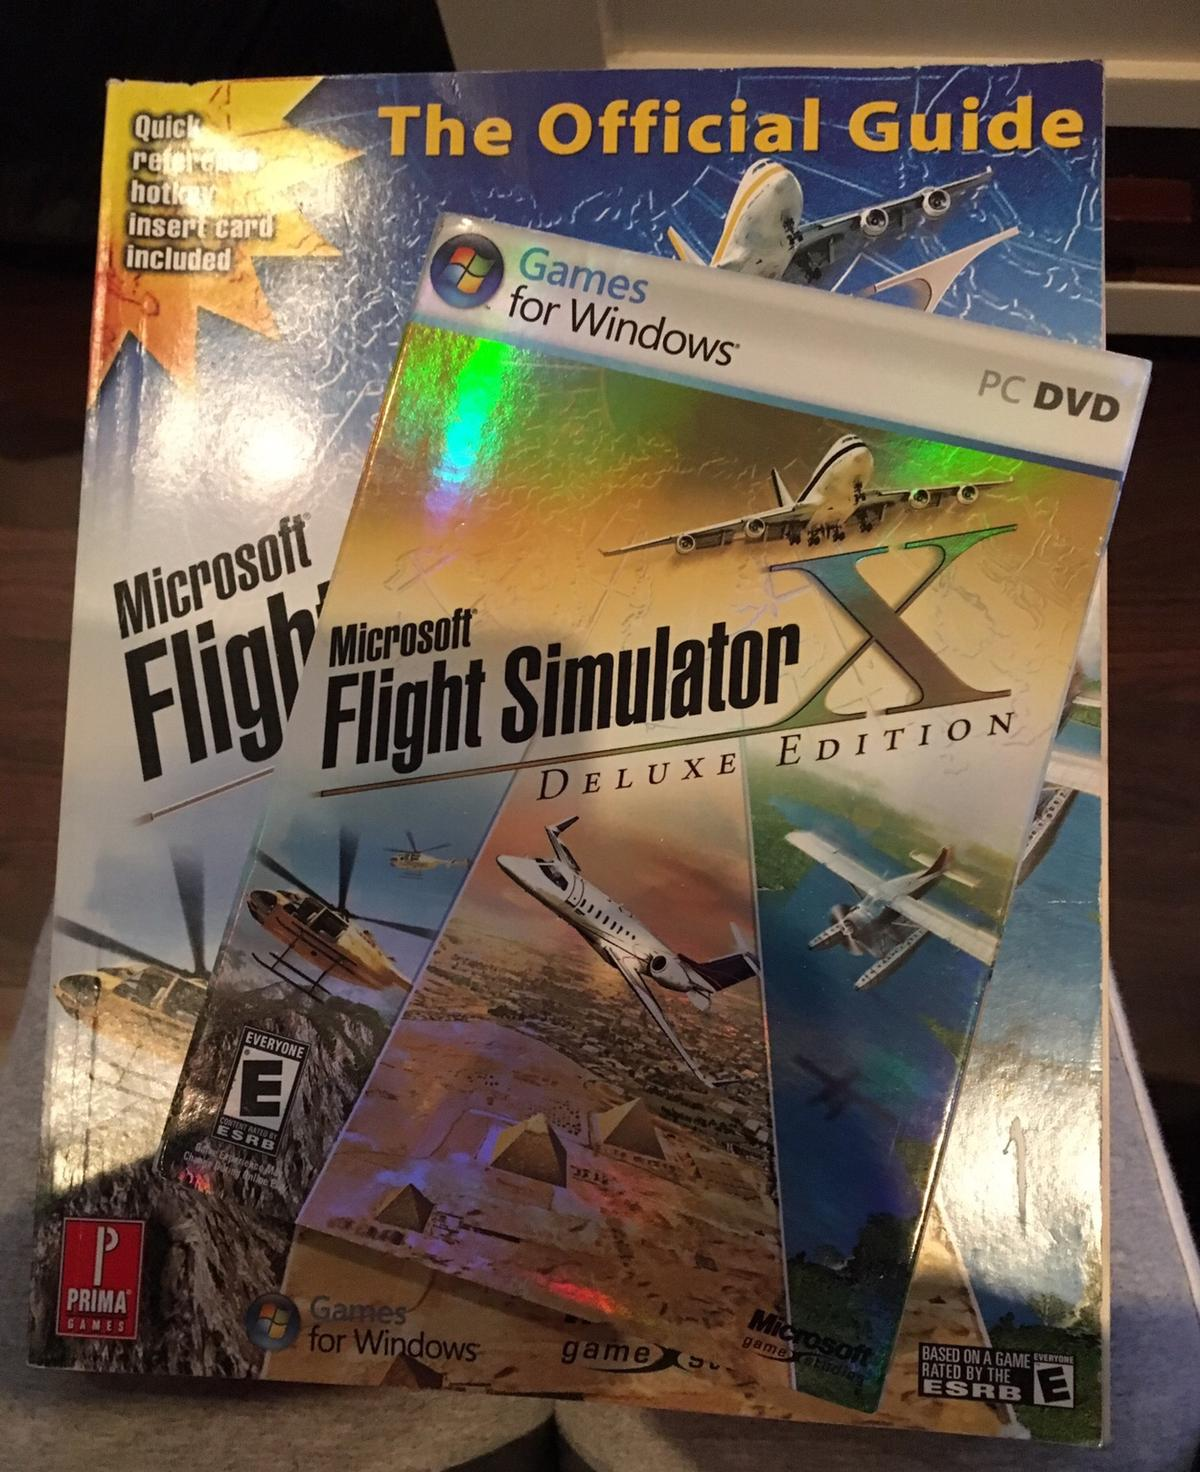 Flight simulator games for windows